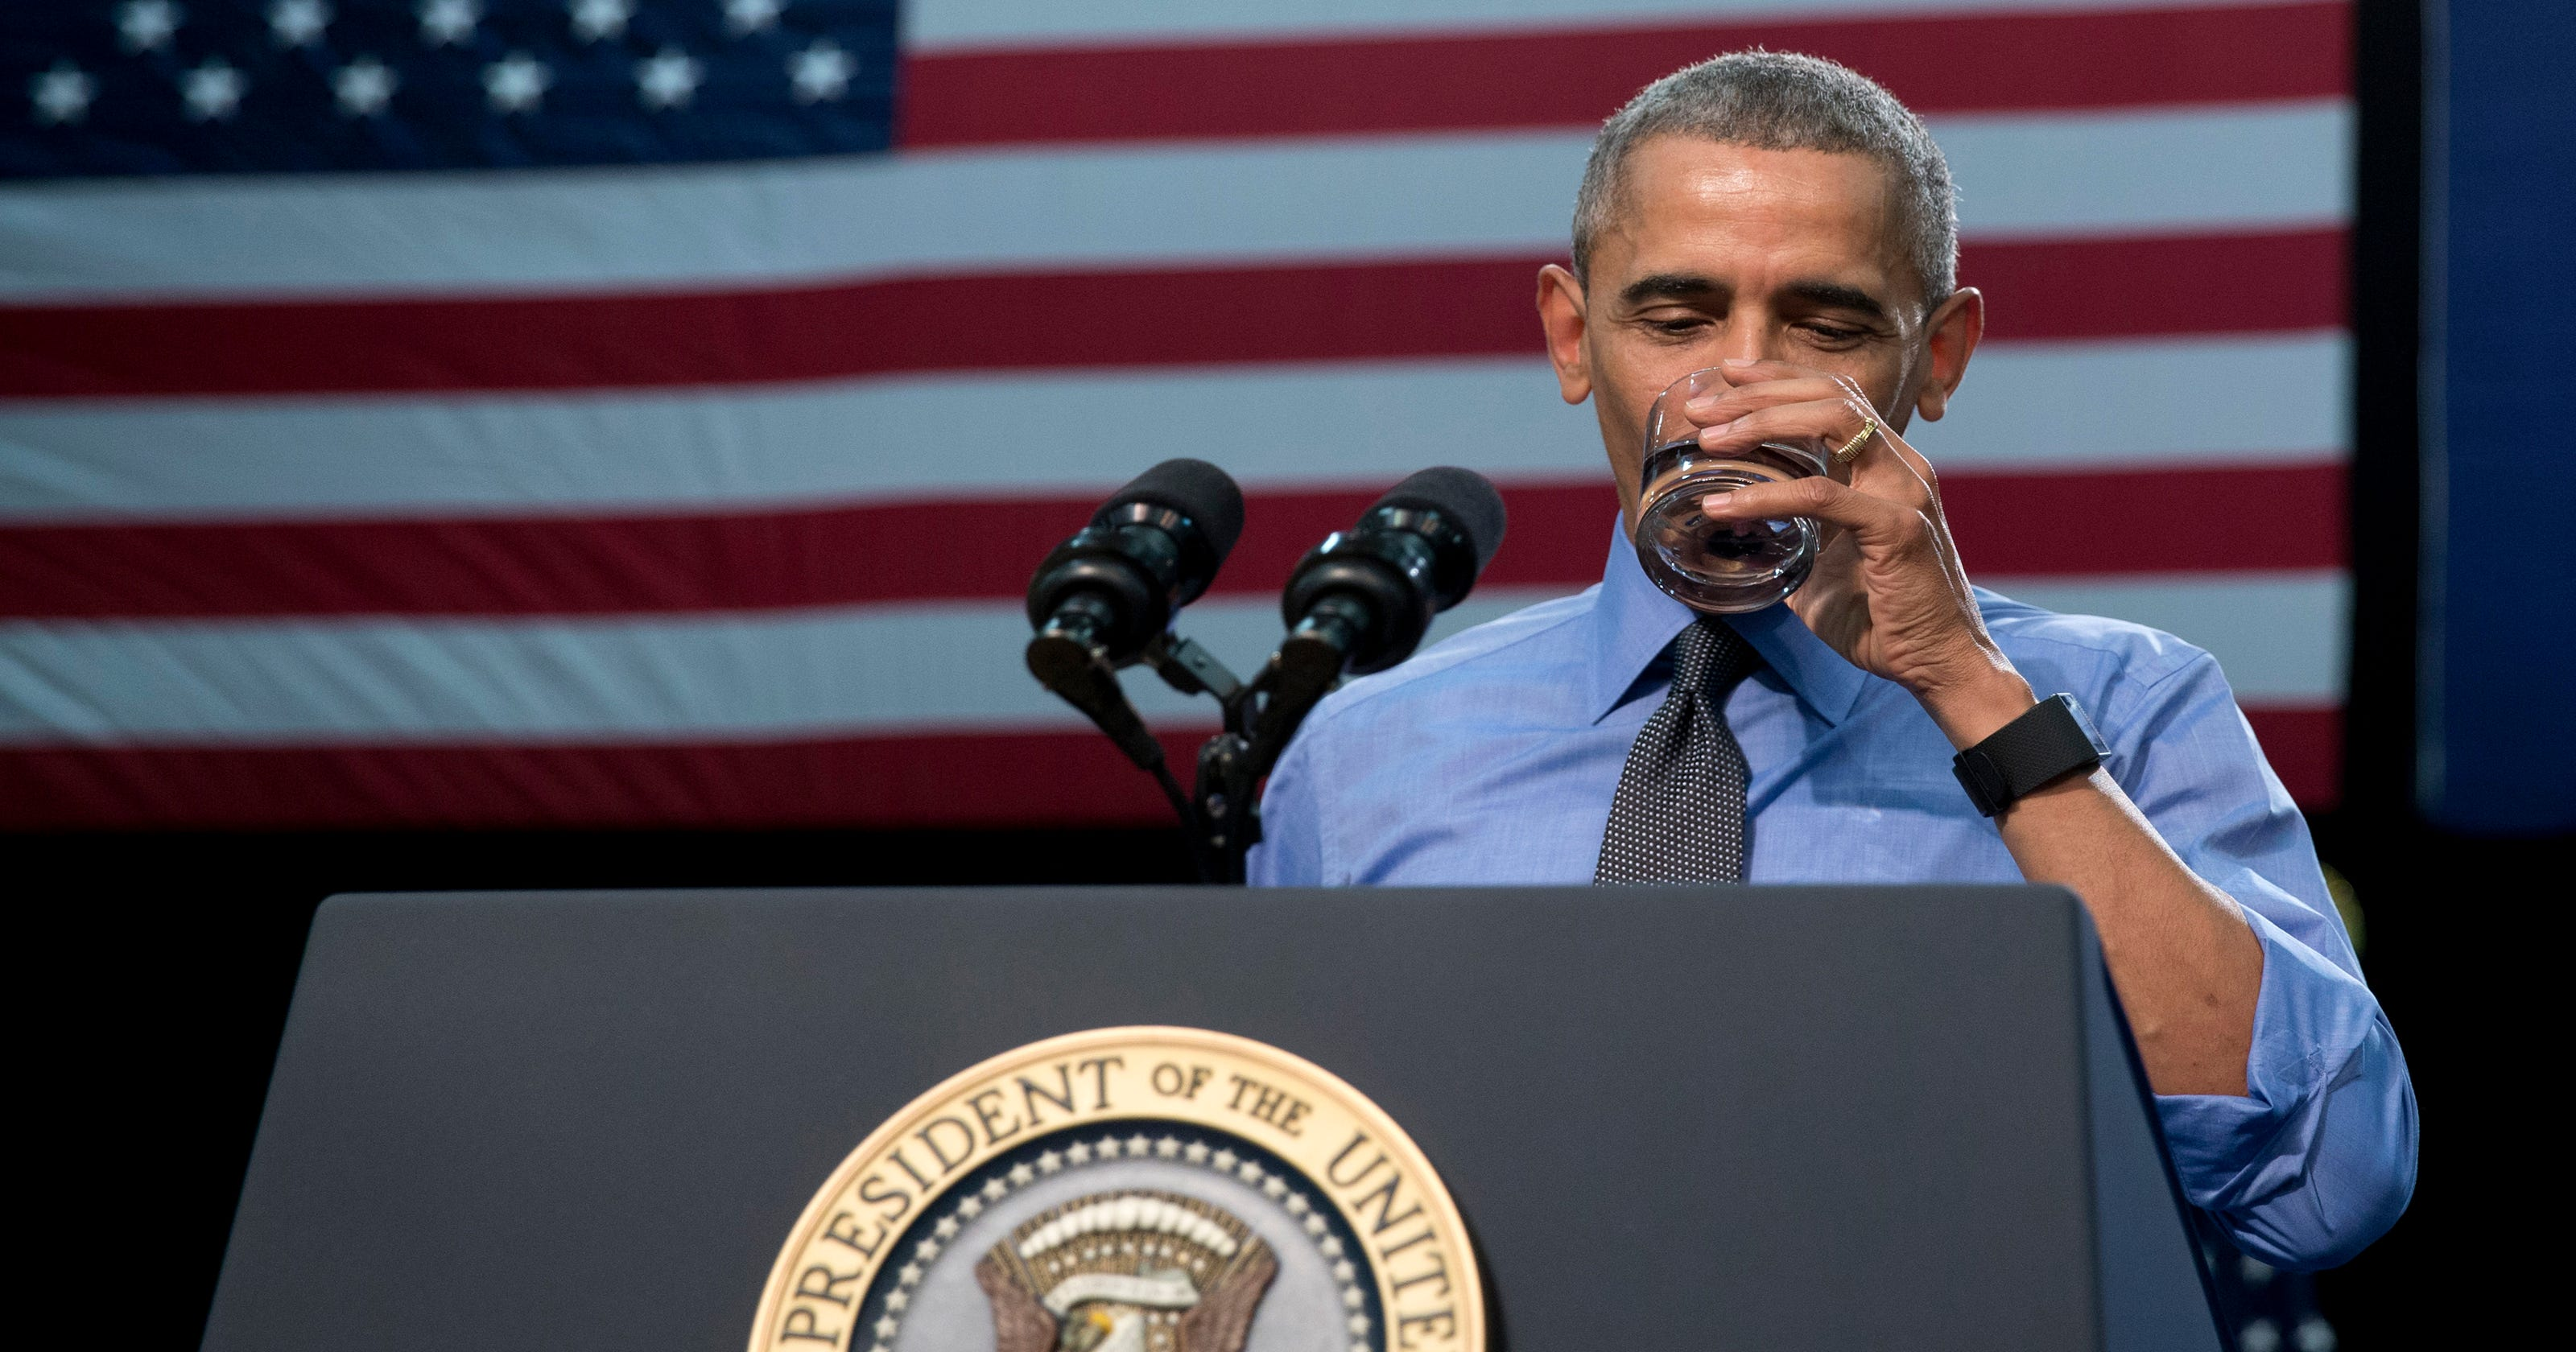 Obama to Flint: 'Don't lose hope,' drinks the water